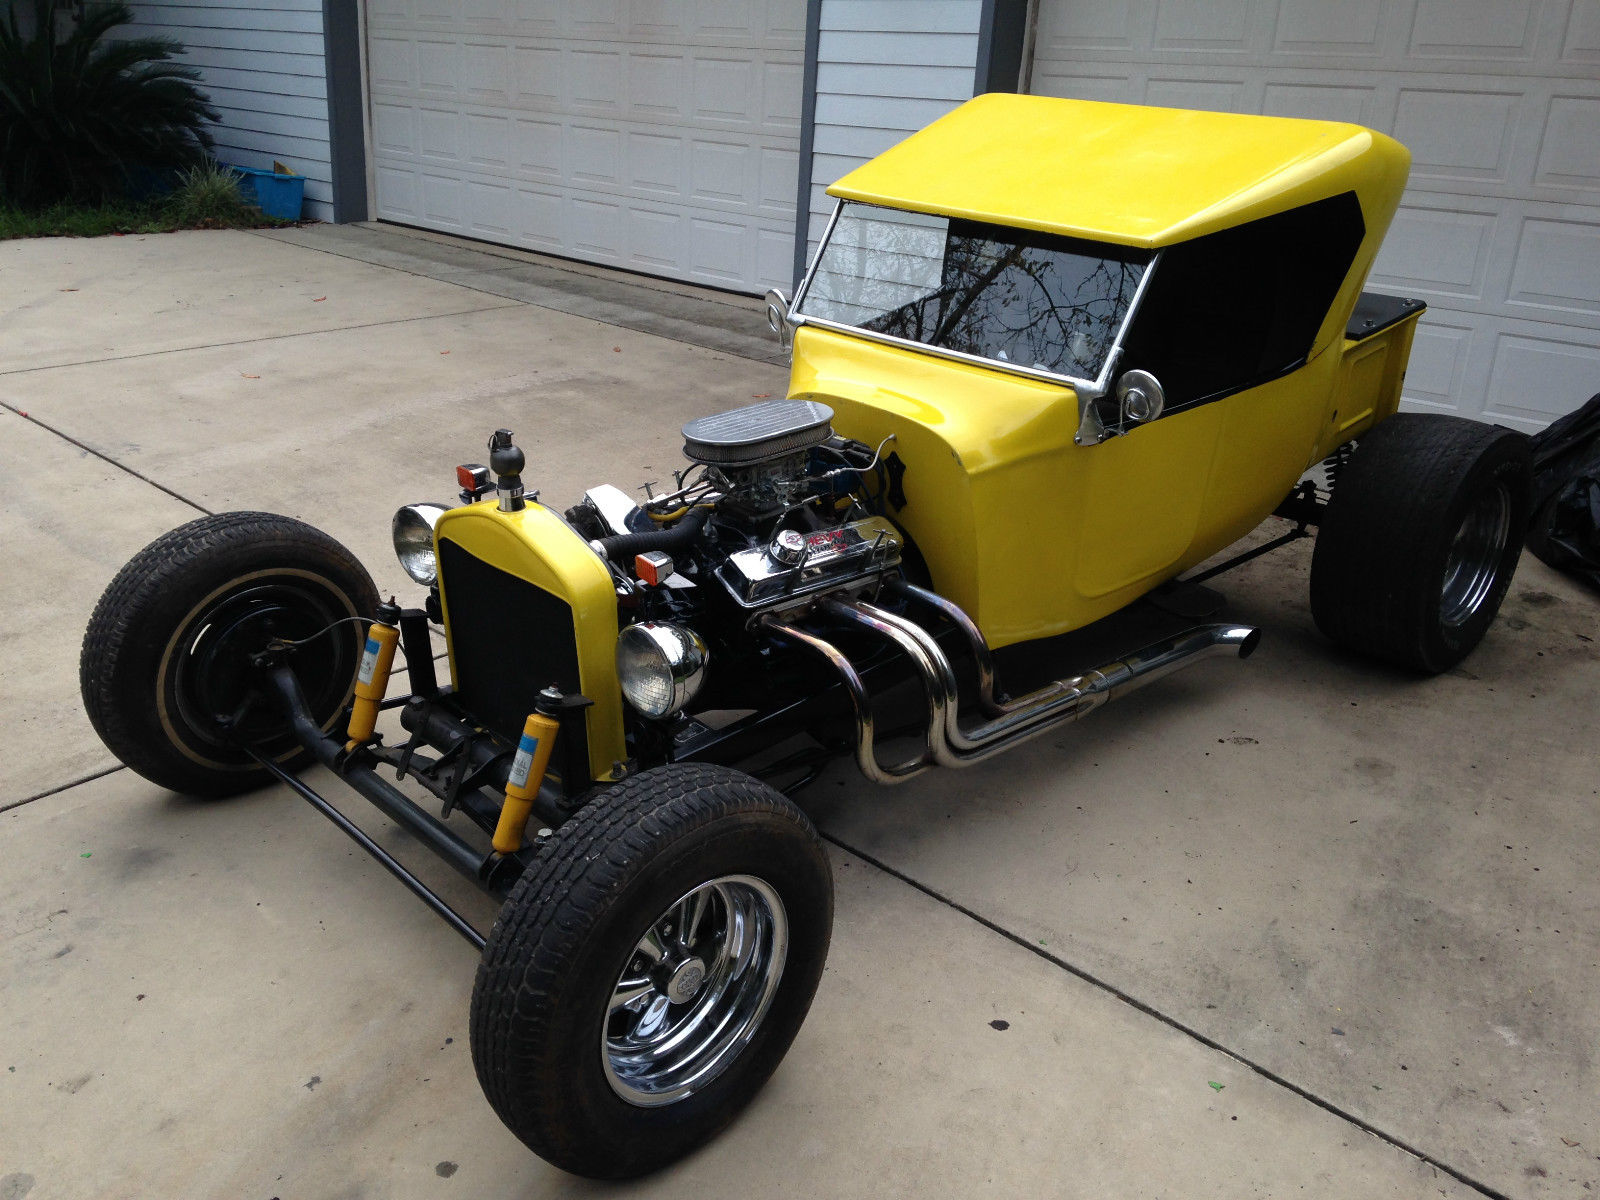 hot rod projects for sale Restorable customs, hot rods and muscle project cars current inventory - click here to request details and photos ford, 1926 model t touring hotrod $3,500 ford, 1926 model t coupe started hot rod $8,500.